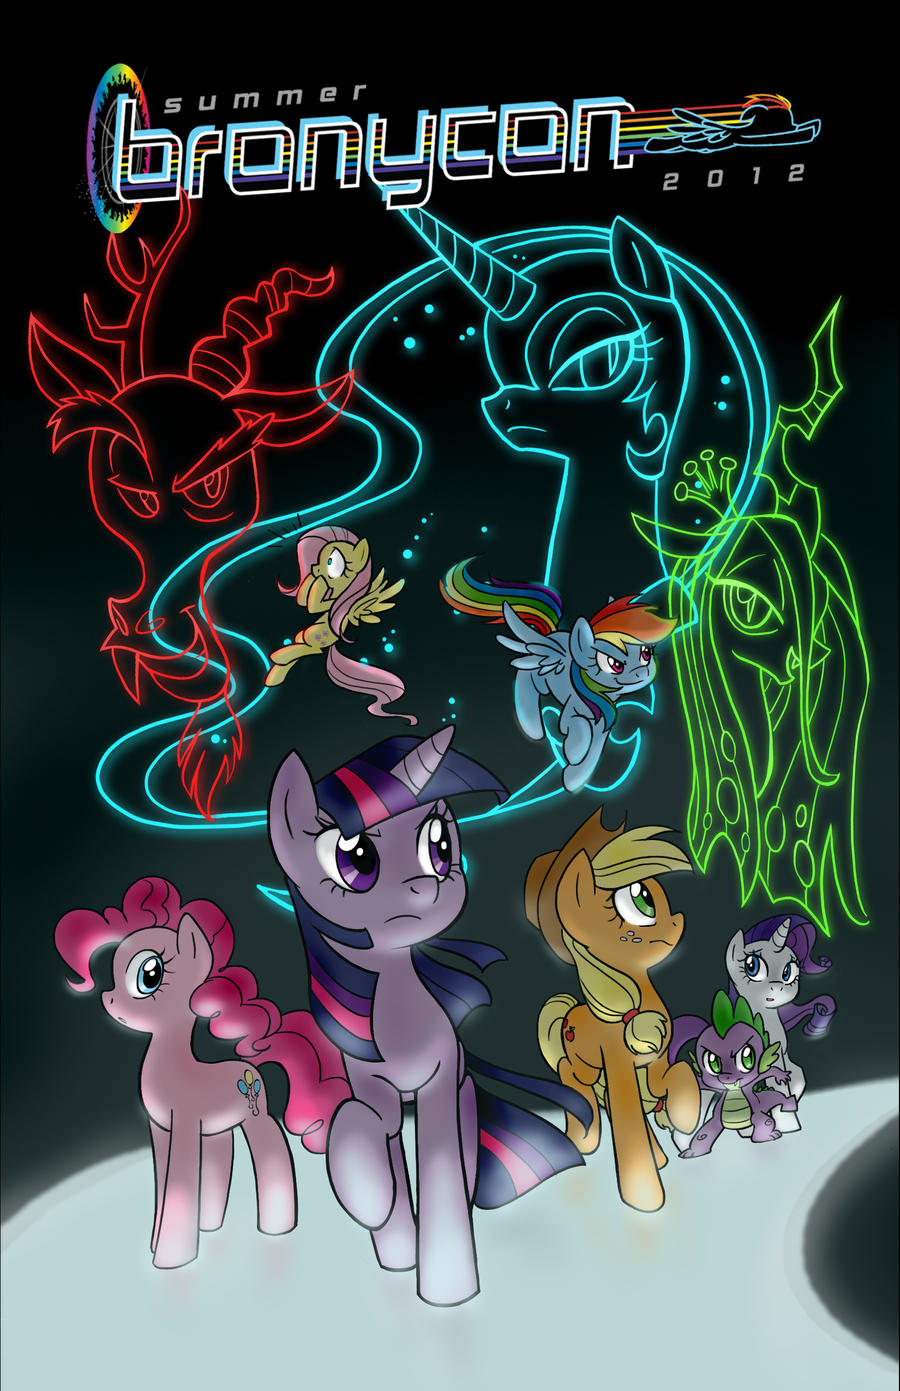 BronyCon cover contest entry by chibi-jen-hen on DeviantArt